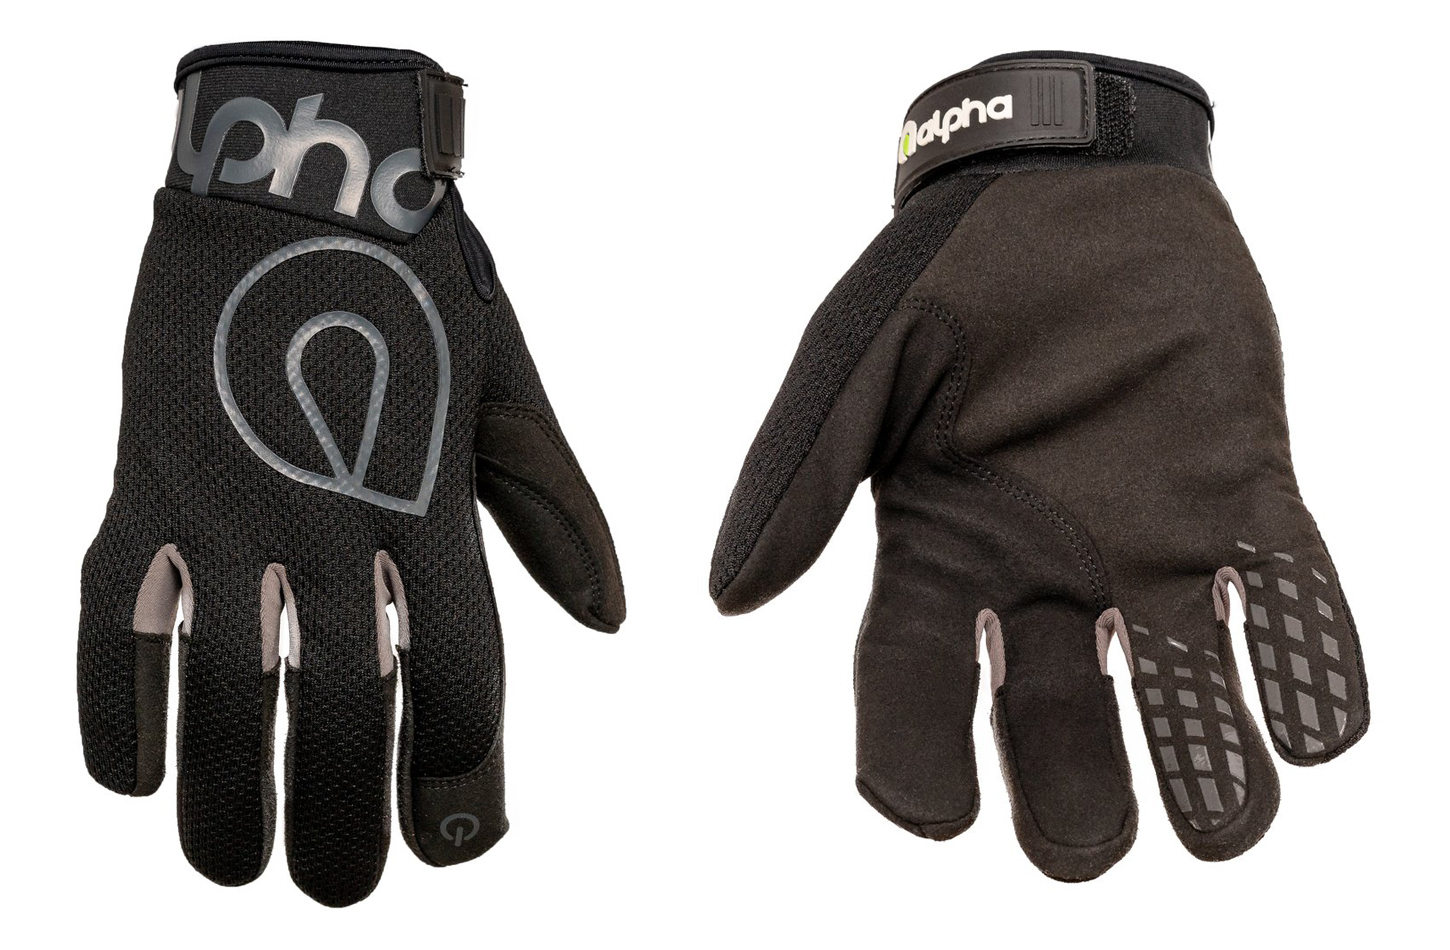 Alpha Gloves AG02-01-S Gloves, Shop, The Standard, Hook and Loop Closure, Neoprene Cuff, Mesh Top, Touch Screen Capable, Synthetic Leather Palm, Black, Small, Pair